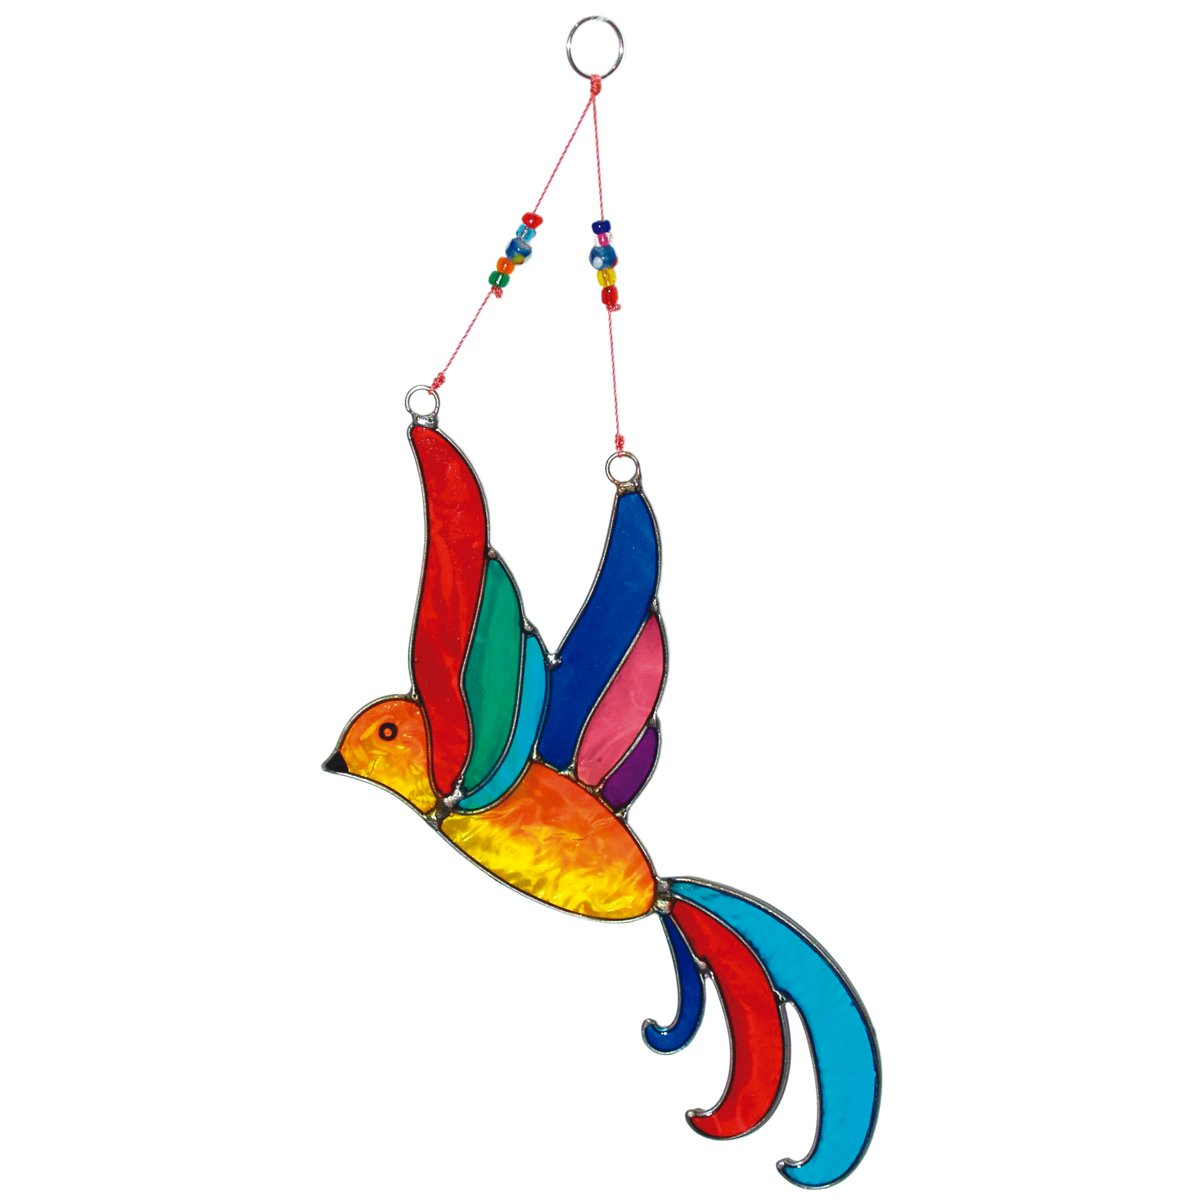 laroom 12462 – Pendant bird 26 cm, Color Multicolor